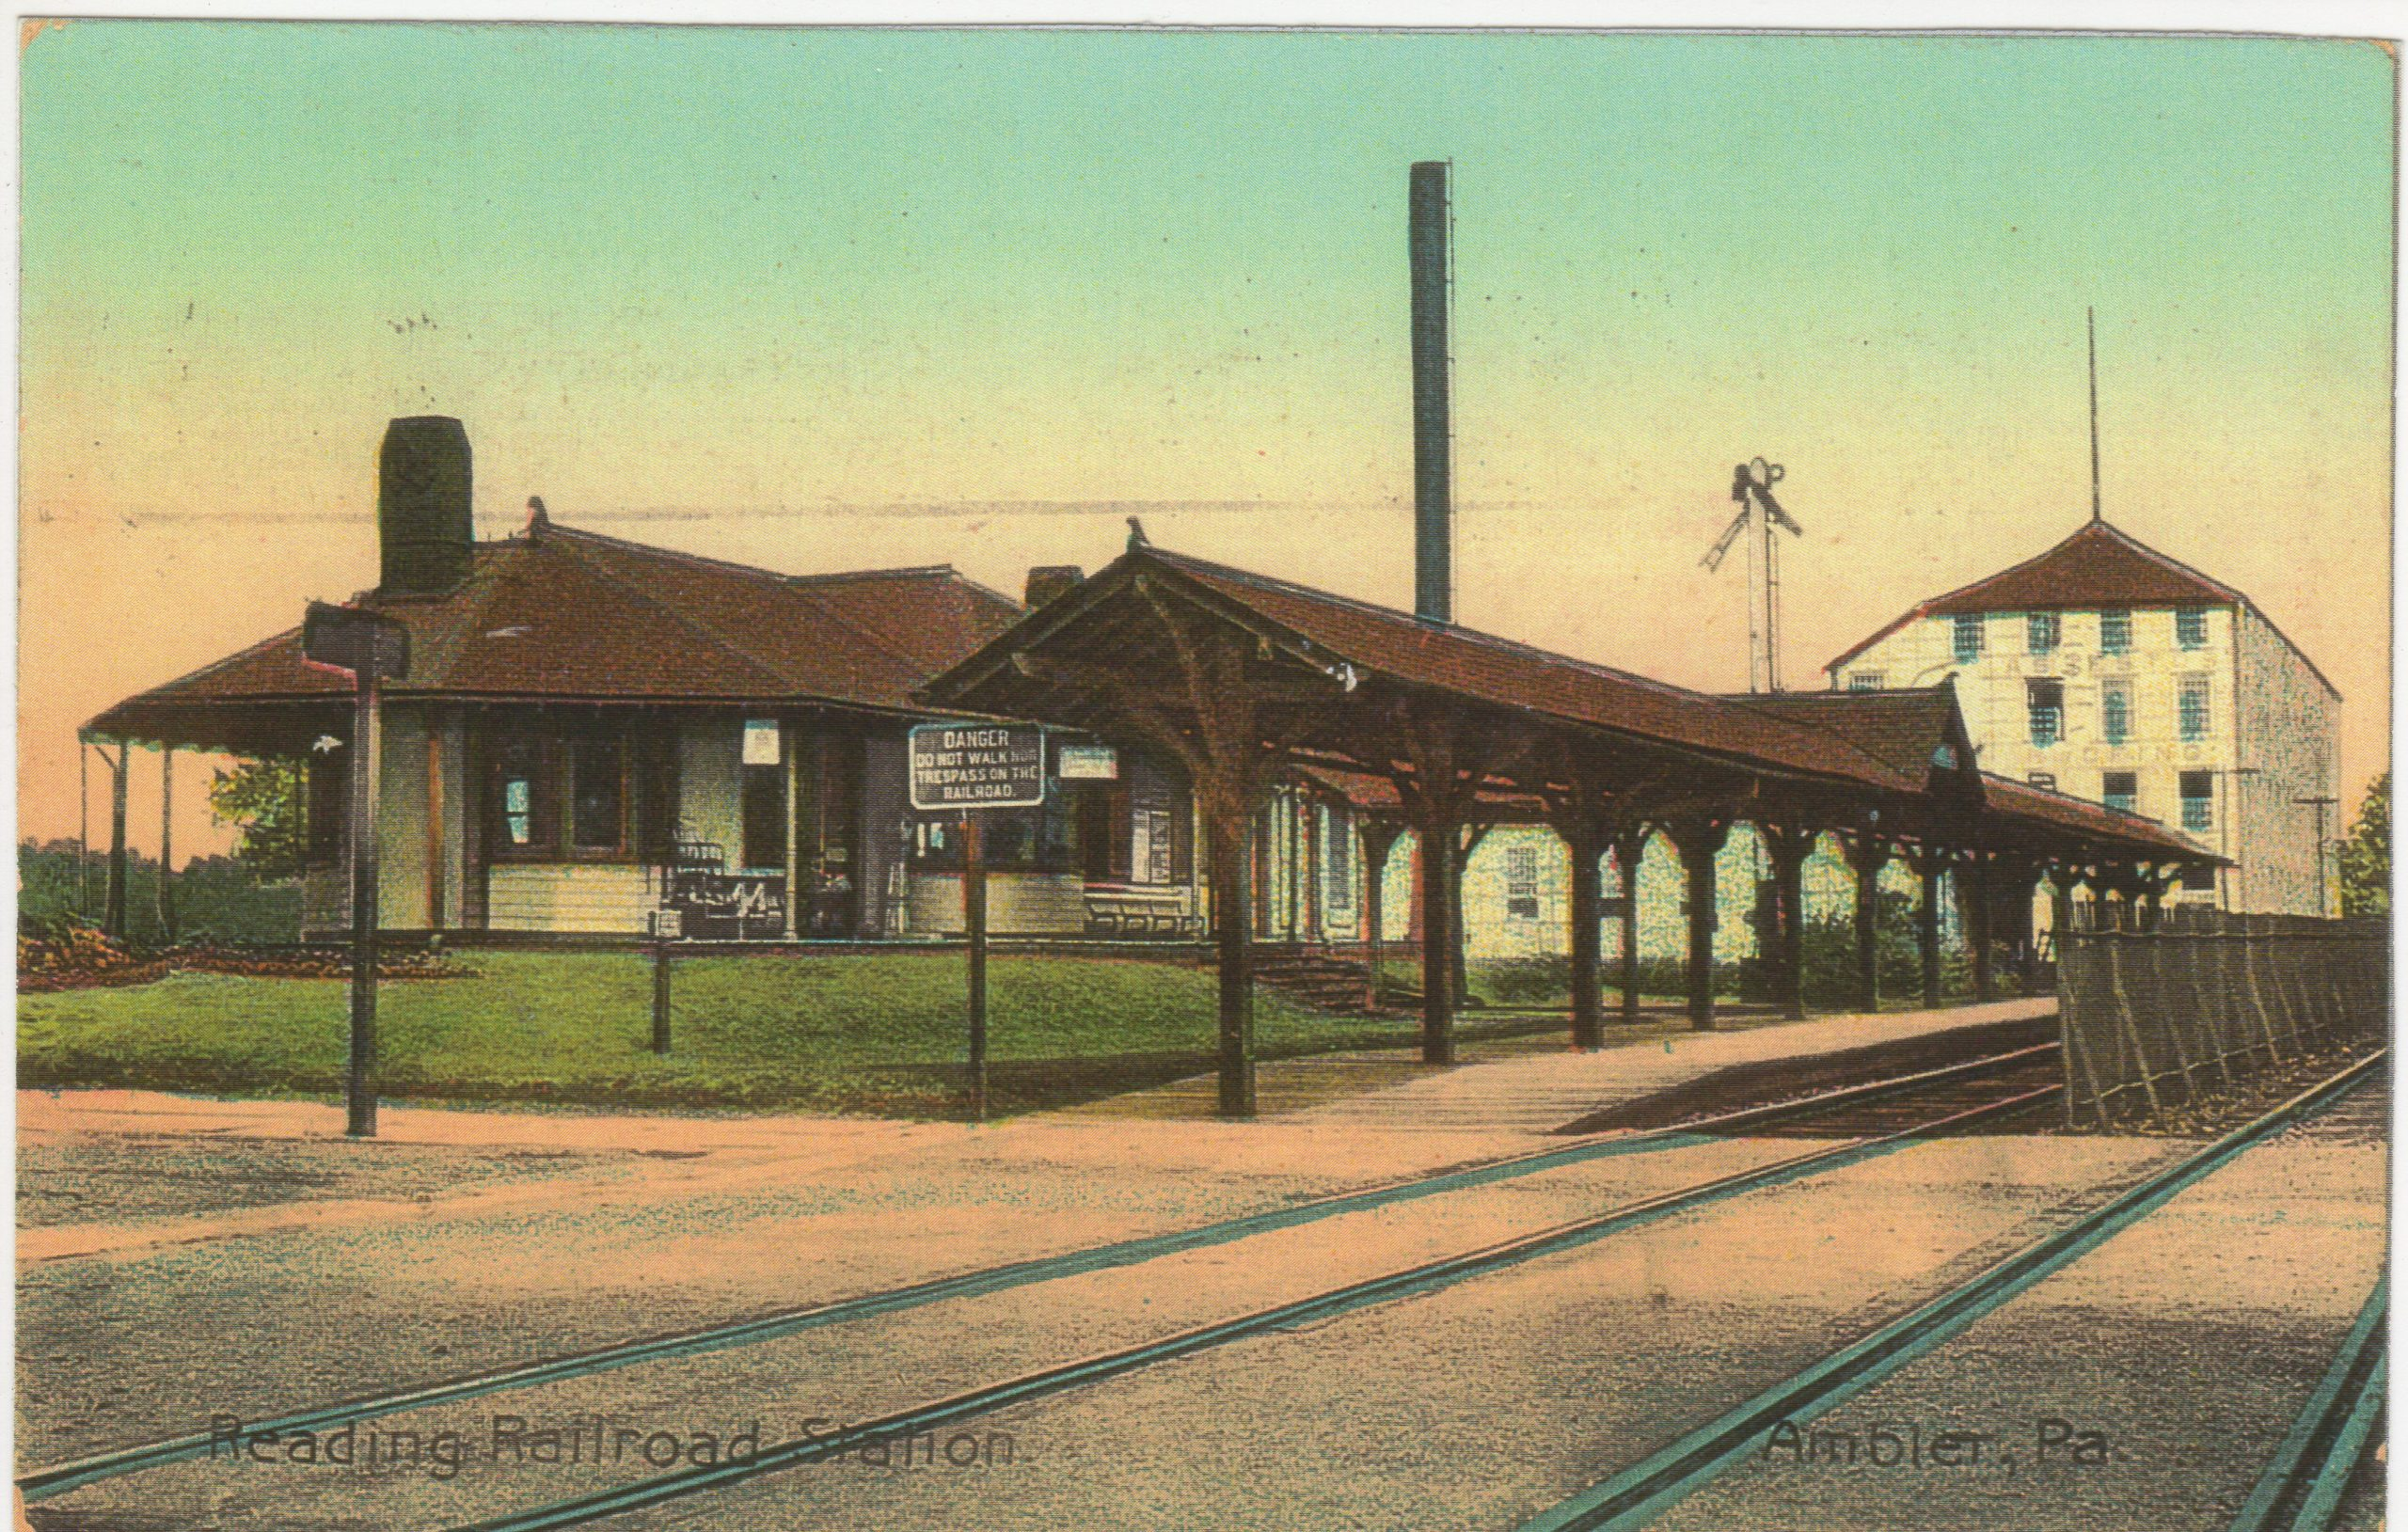 4125.44 Ambler Pa Postcard_Reading Railroad Station_circa 1912